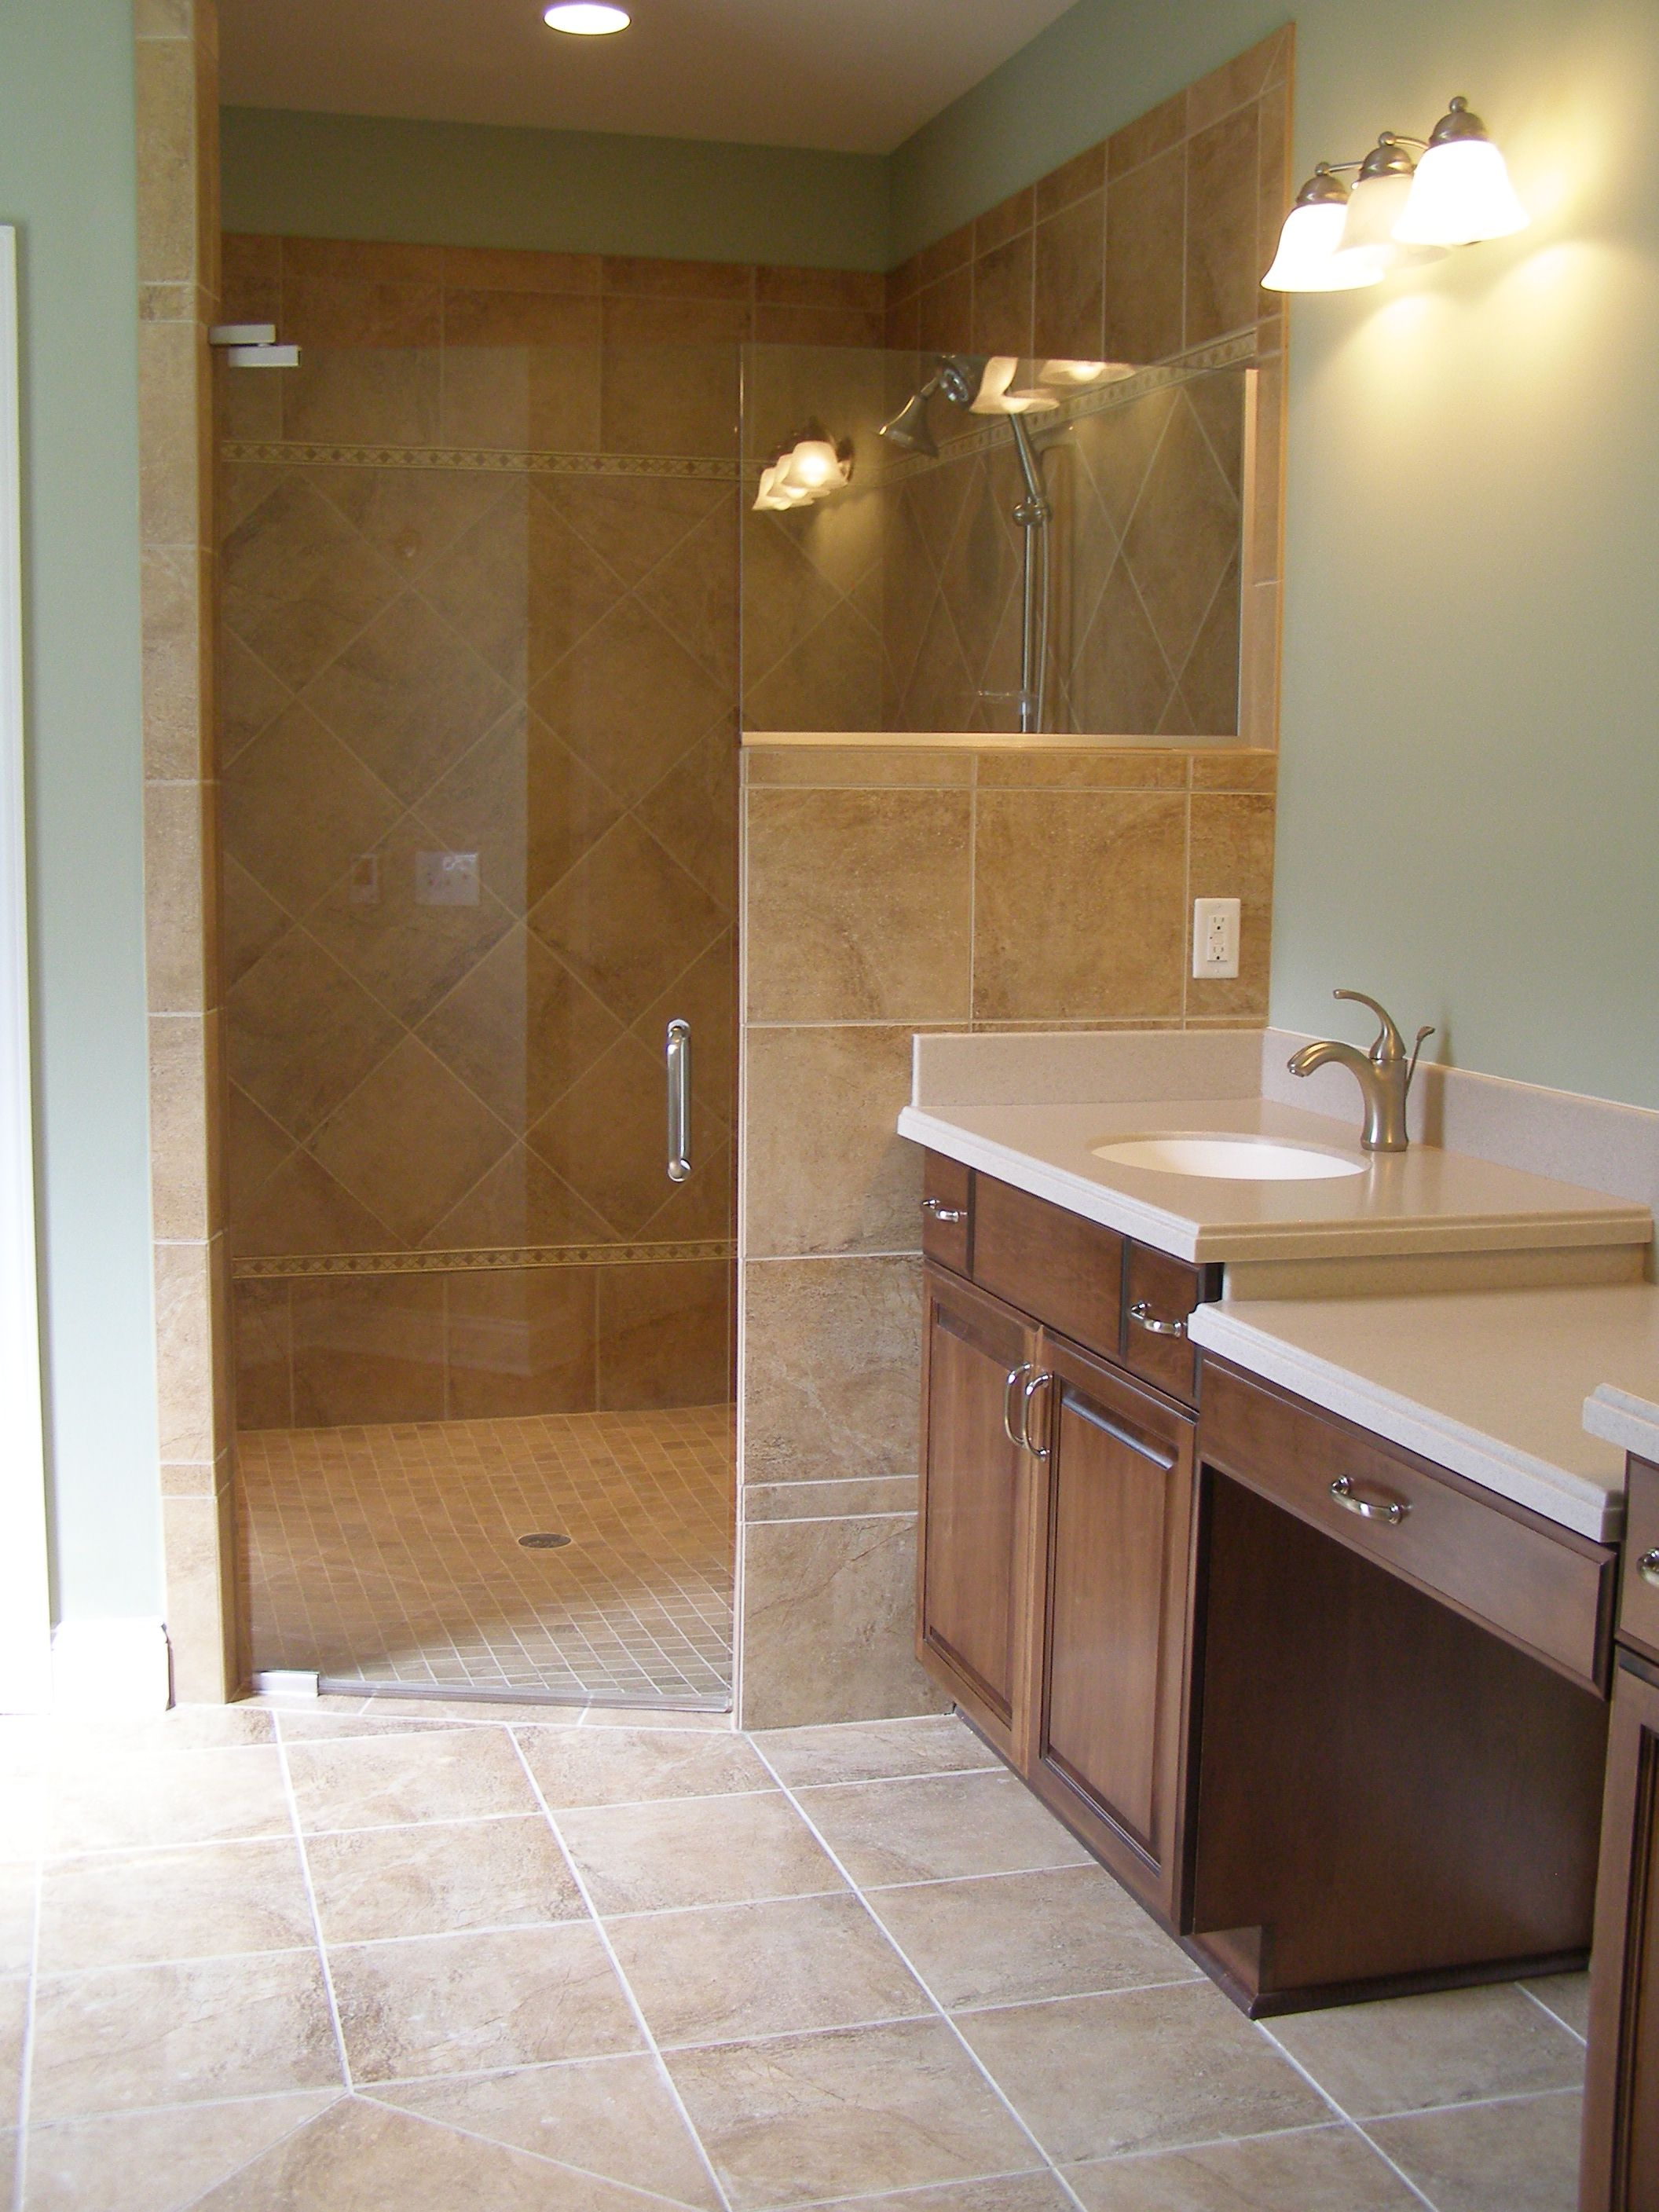 Charming Walk In Shower Doors Part - 1: Walk In Shower Doors | Corner Walk In Tile Shower With Frameless Shower Door